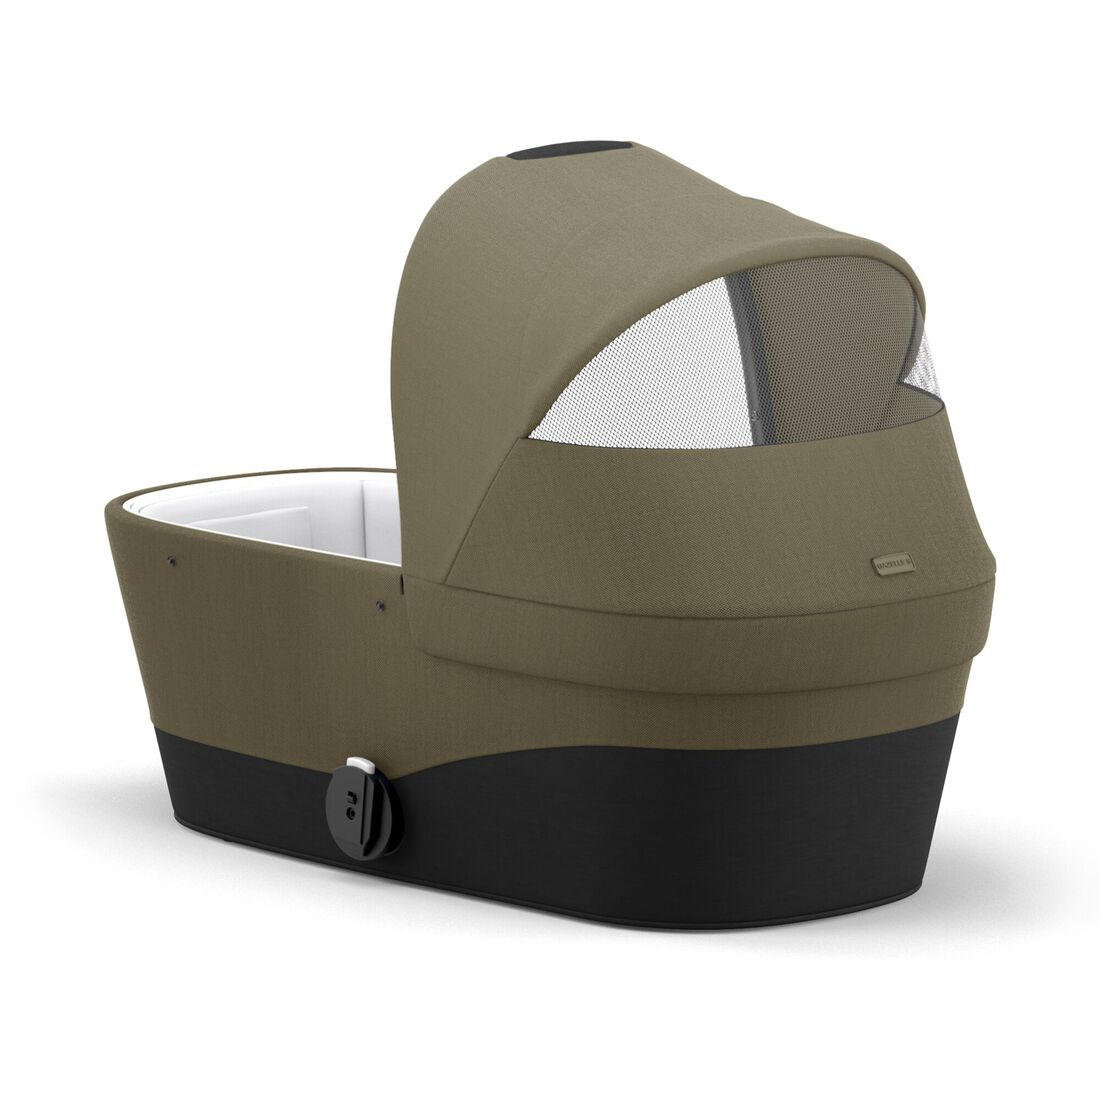 CYBEX Gazelle S Cot - Classic Beige in Classic Beige large image number 4